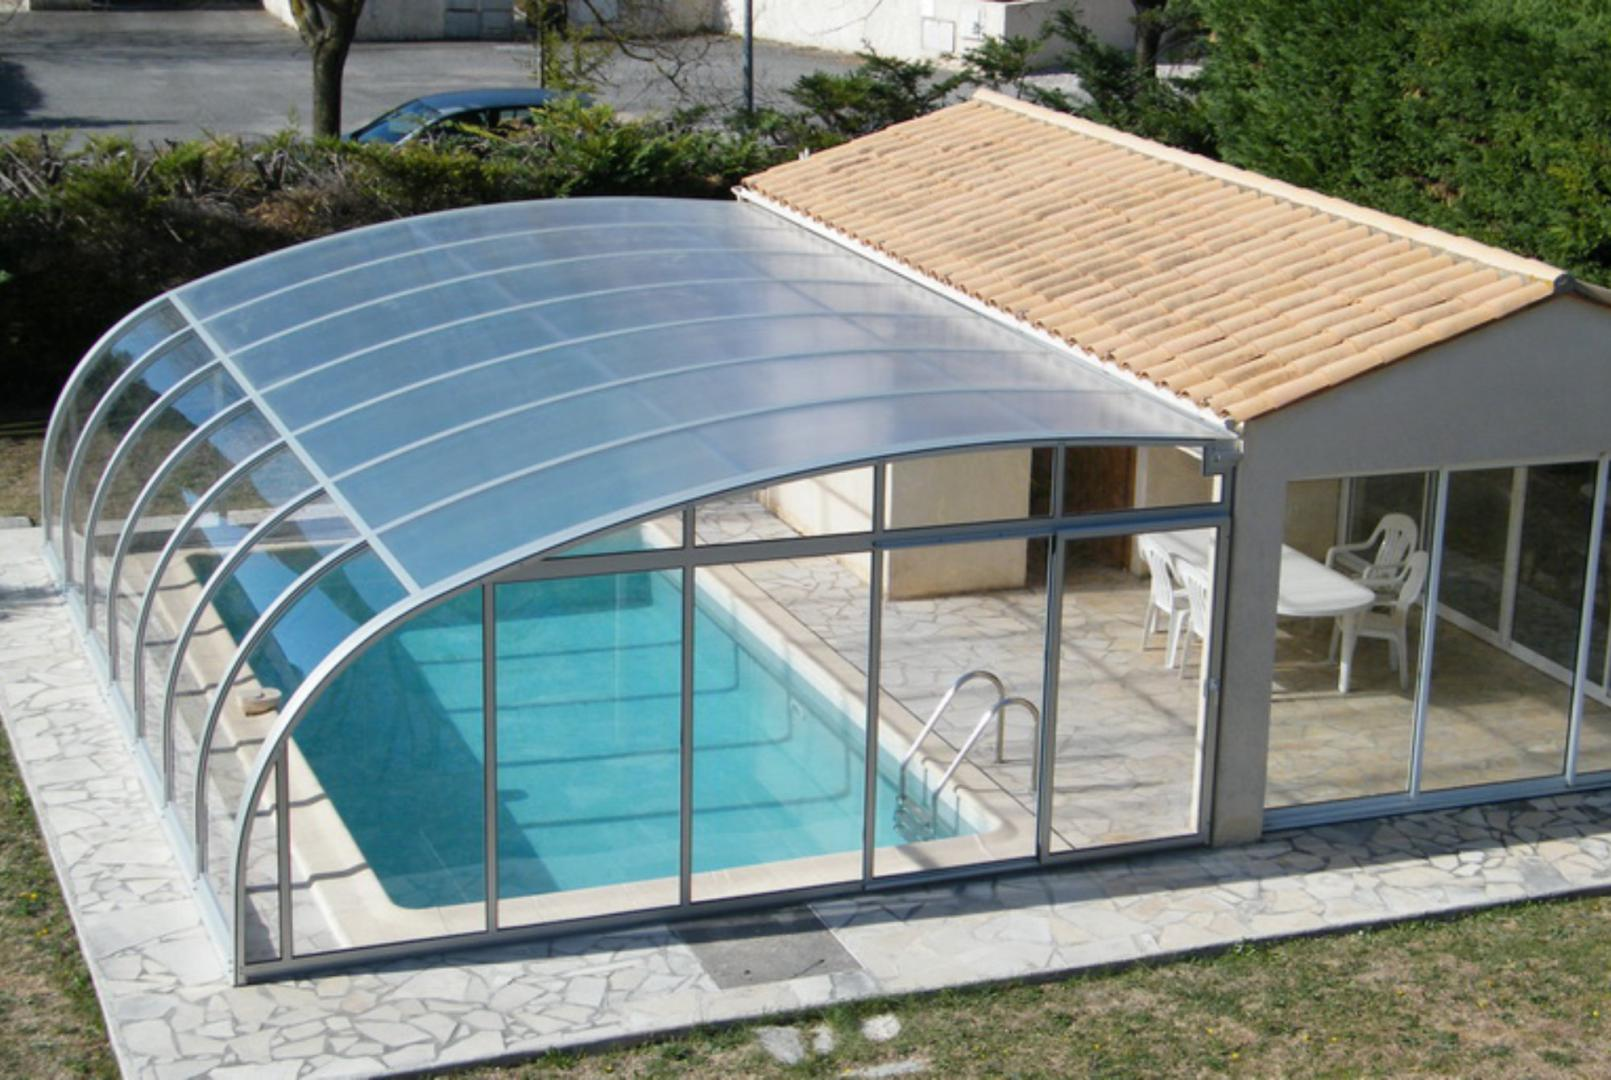 Abri de piscine plat bas mi haut r sidentiel adoss coulissant transparent mobile juralu - Abri de terrasse retractable ...